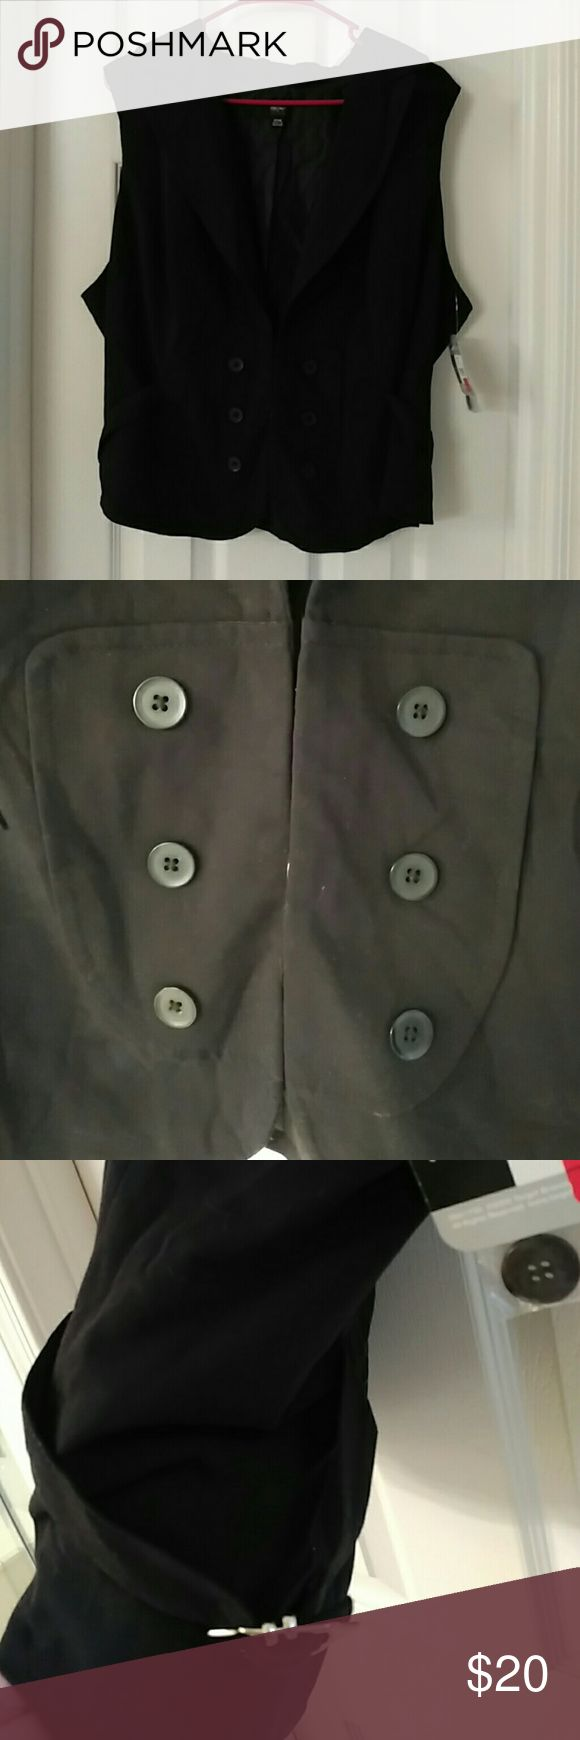 Nwt plus size 2X size 20 black front hook vest NWT beautiful mossimo plus size polyester vest faux buttons front  hooks down the front has side buckle ties for detail + synching beautiful low cut all black w silver buckle attached buttons n tags spare buttons perfect condition brand new size 2X tagged 20 made in Philippines   Mossimo stretch polyester rayon blend plus size quality is great   Pit to pit 25 inches flat Vertical back 23 inches flat   Torrid lane Bryant torrid Cato avenue plus…